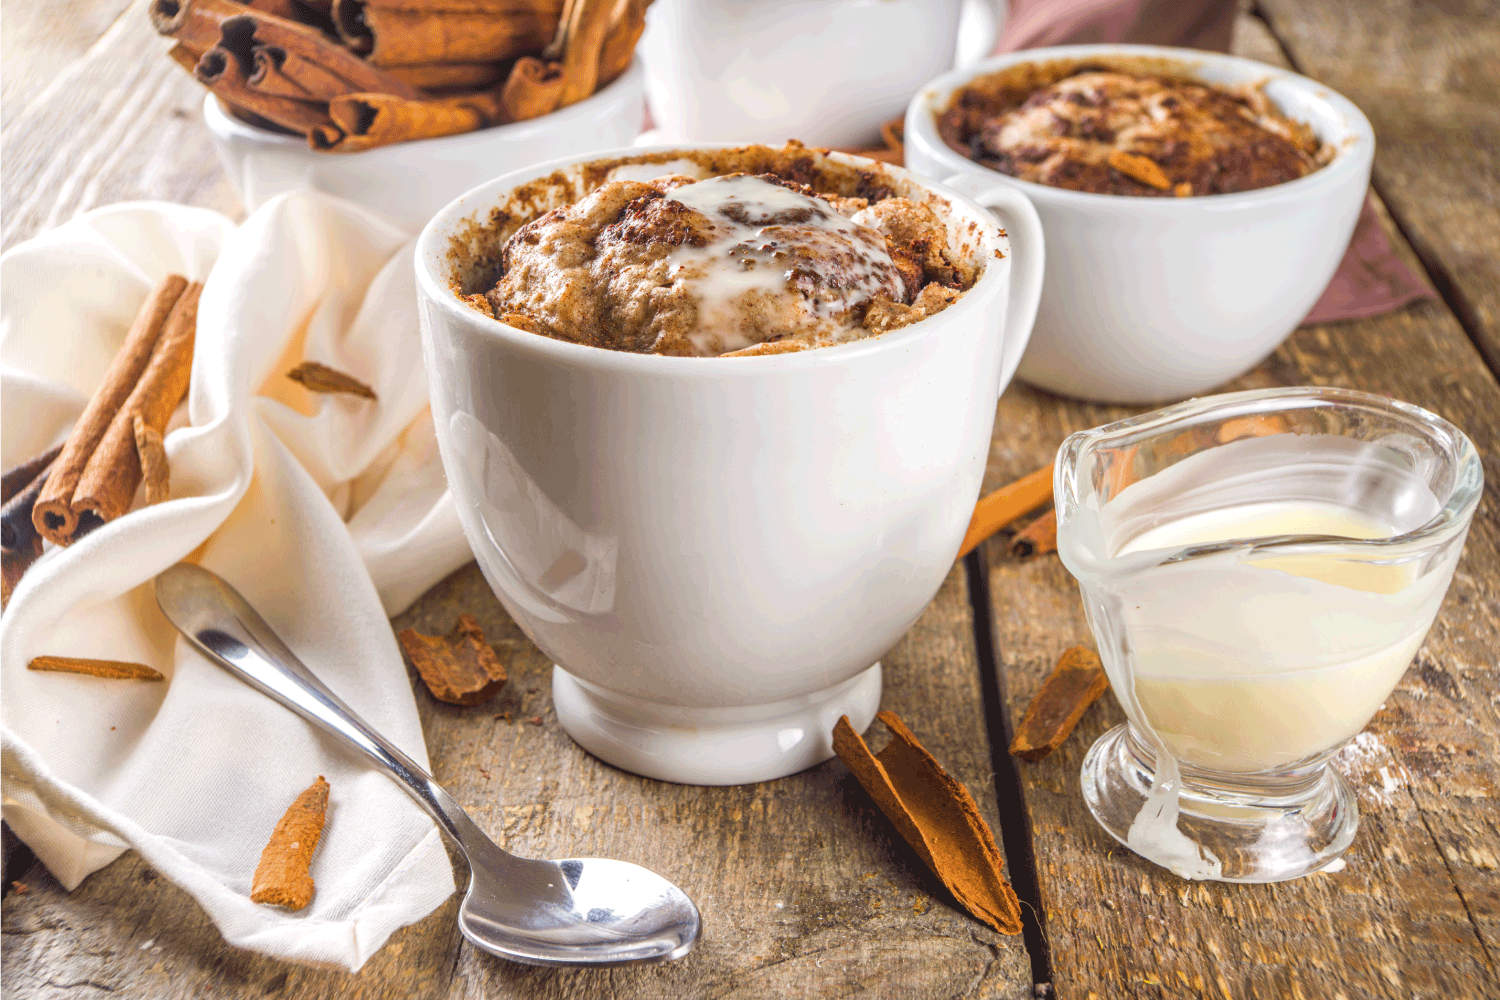 Cinnabon cake in mug. Fast simple microwave dessert idea, background for recipe. Cinnamon roll mugcake, with sugar and cream cheese topping, in different mugs, with cinnamon sticks